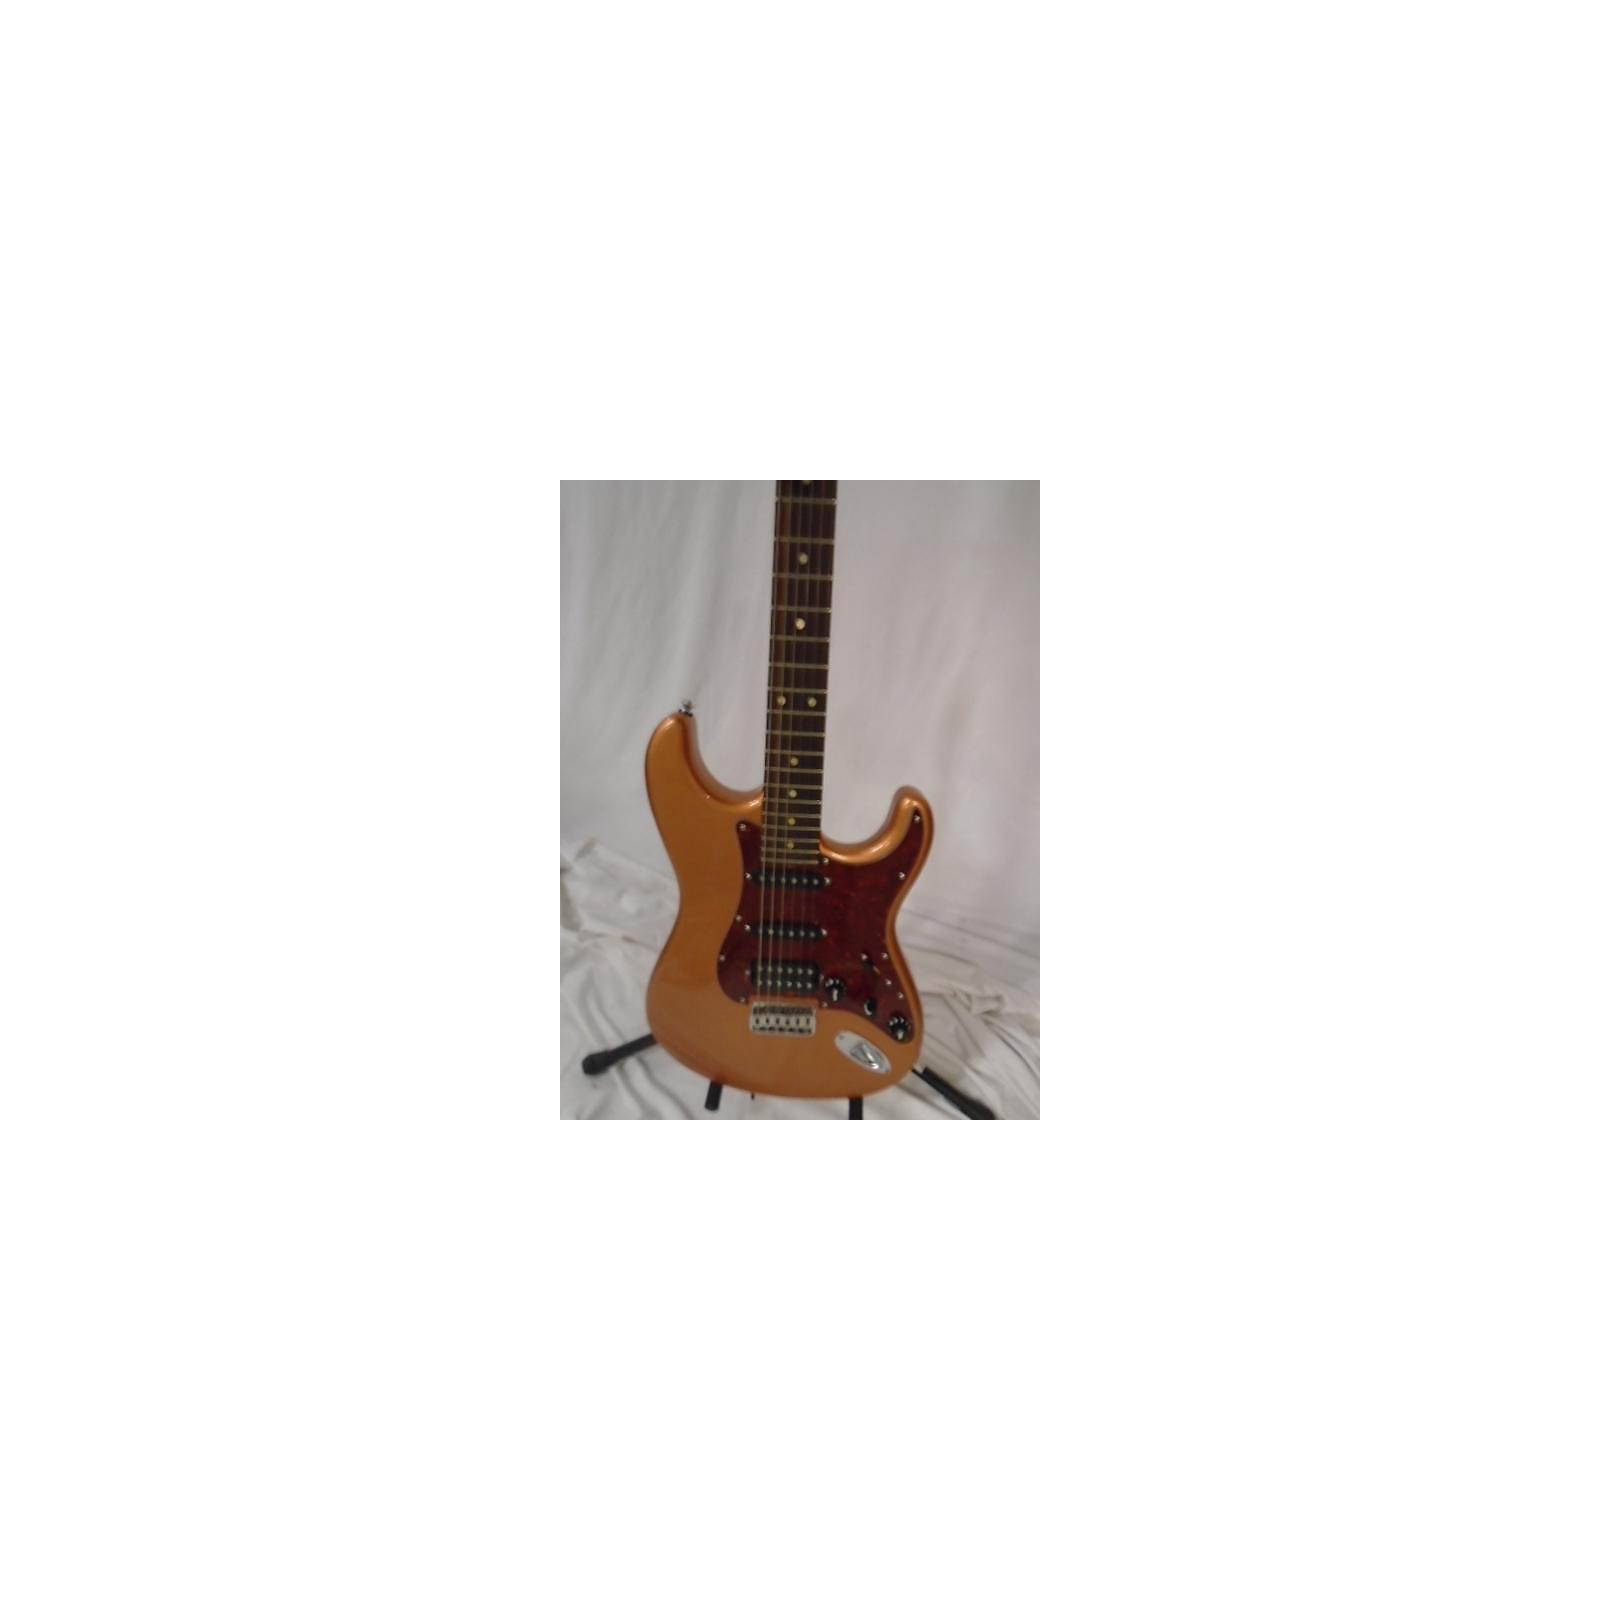 In Store Used Used James Tyler L.a Studio Classic Copper Solid Body Electric Guitar